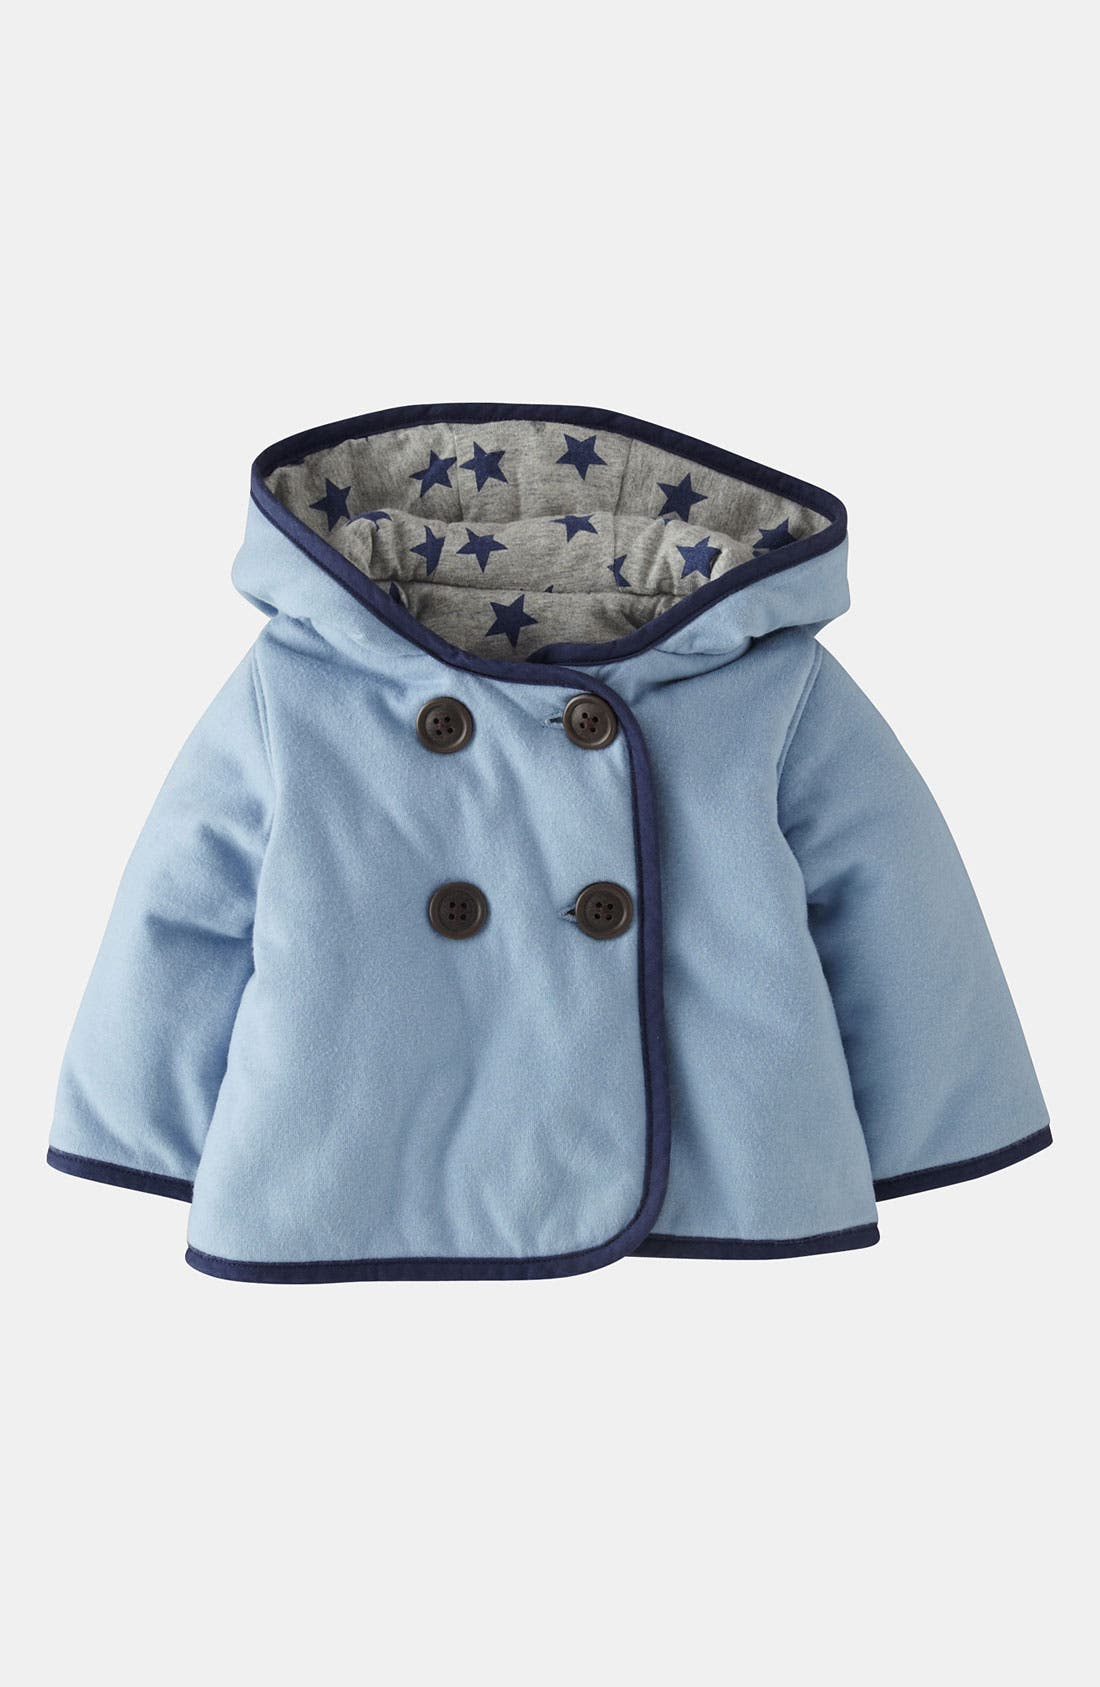 Alternate Image 1 Selected - Mini Boden Padded Jersey Jacket (Baby)